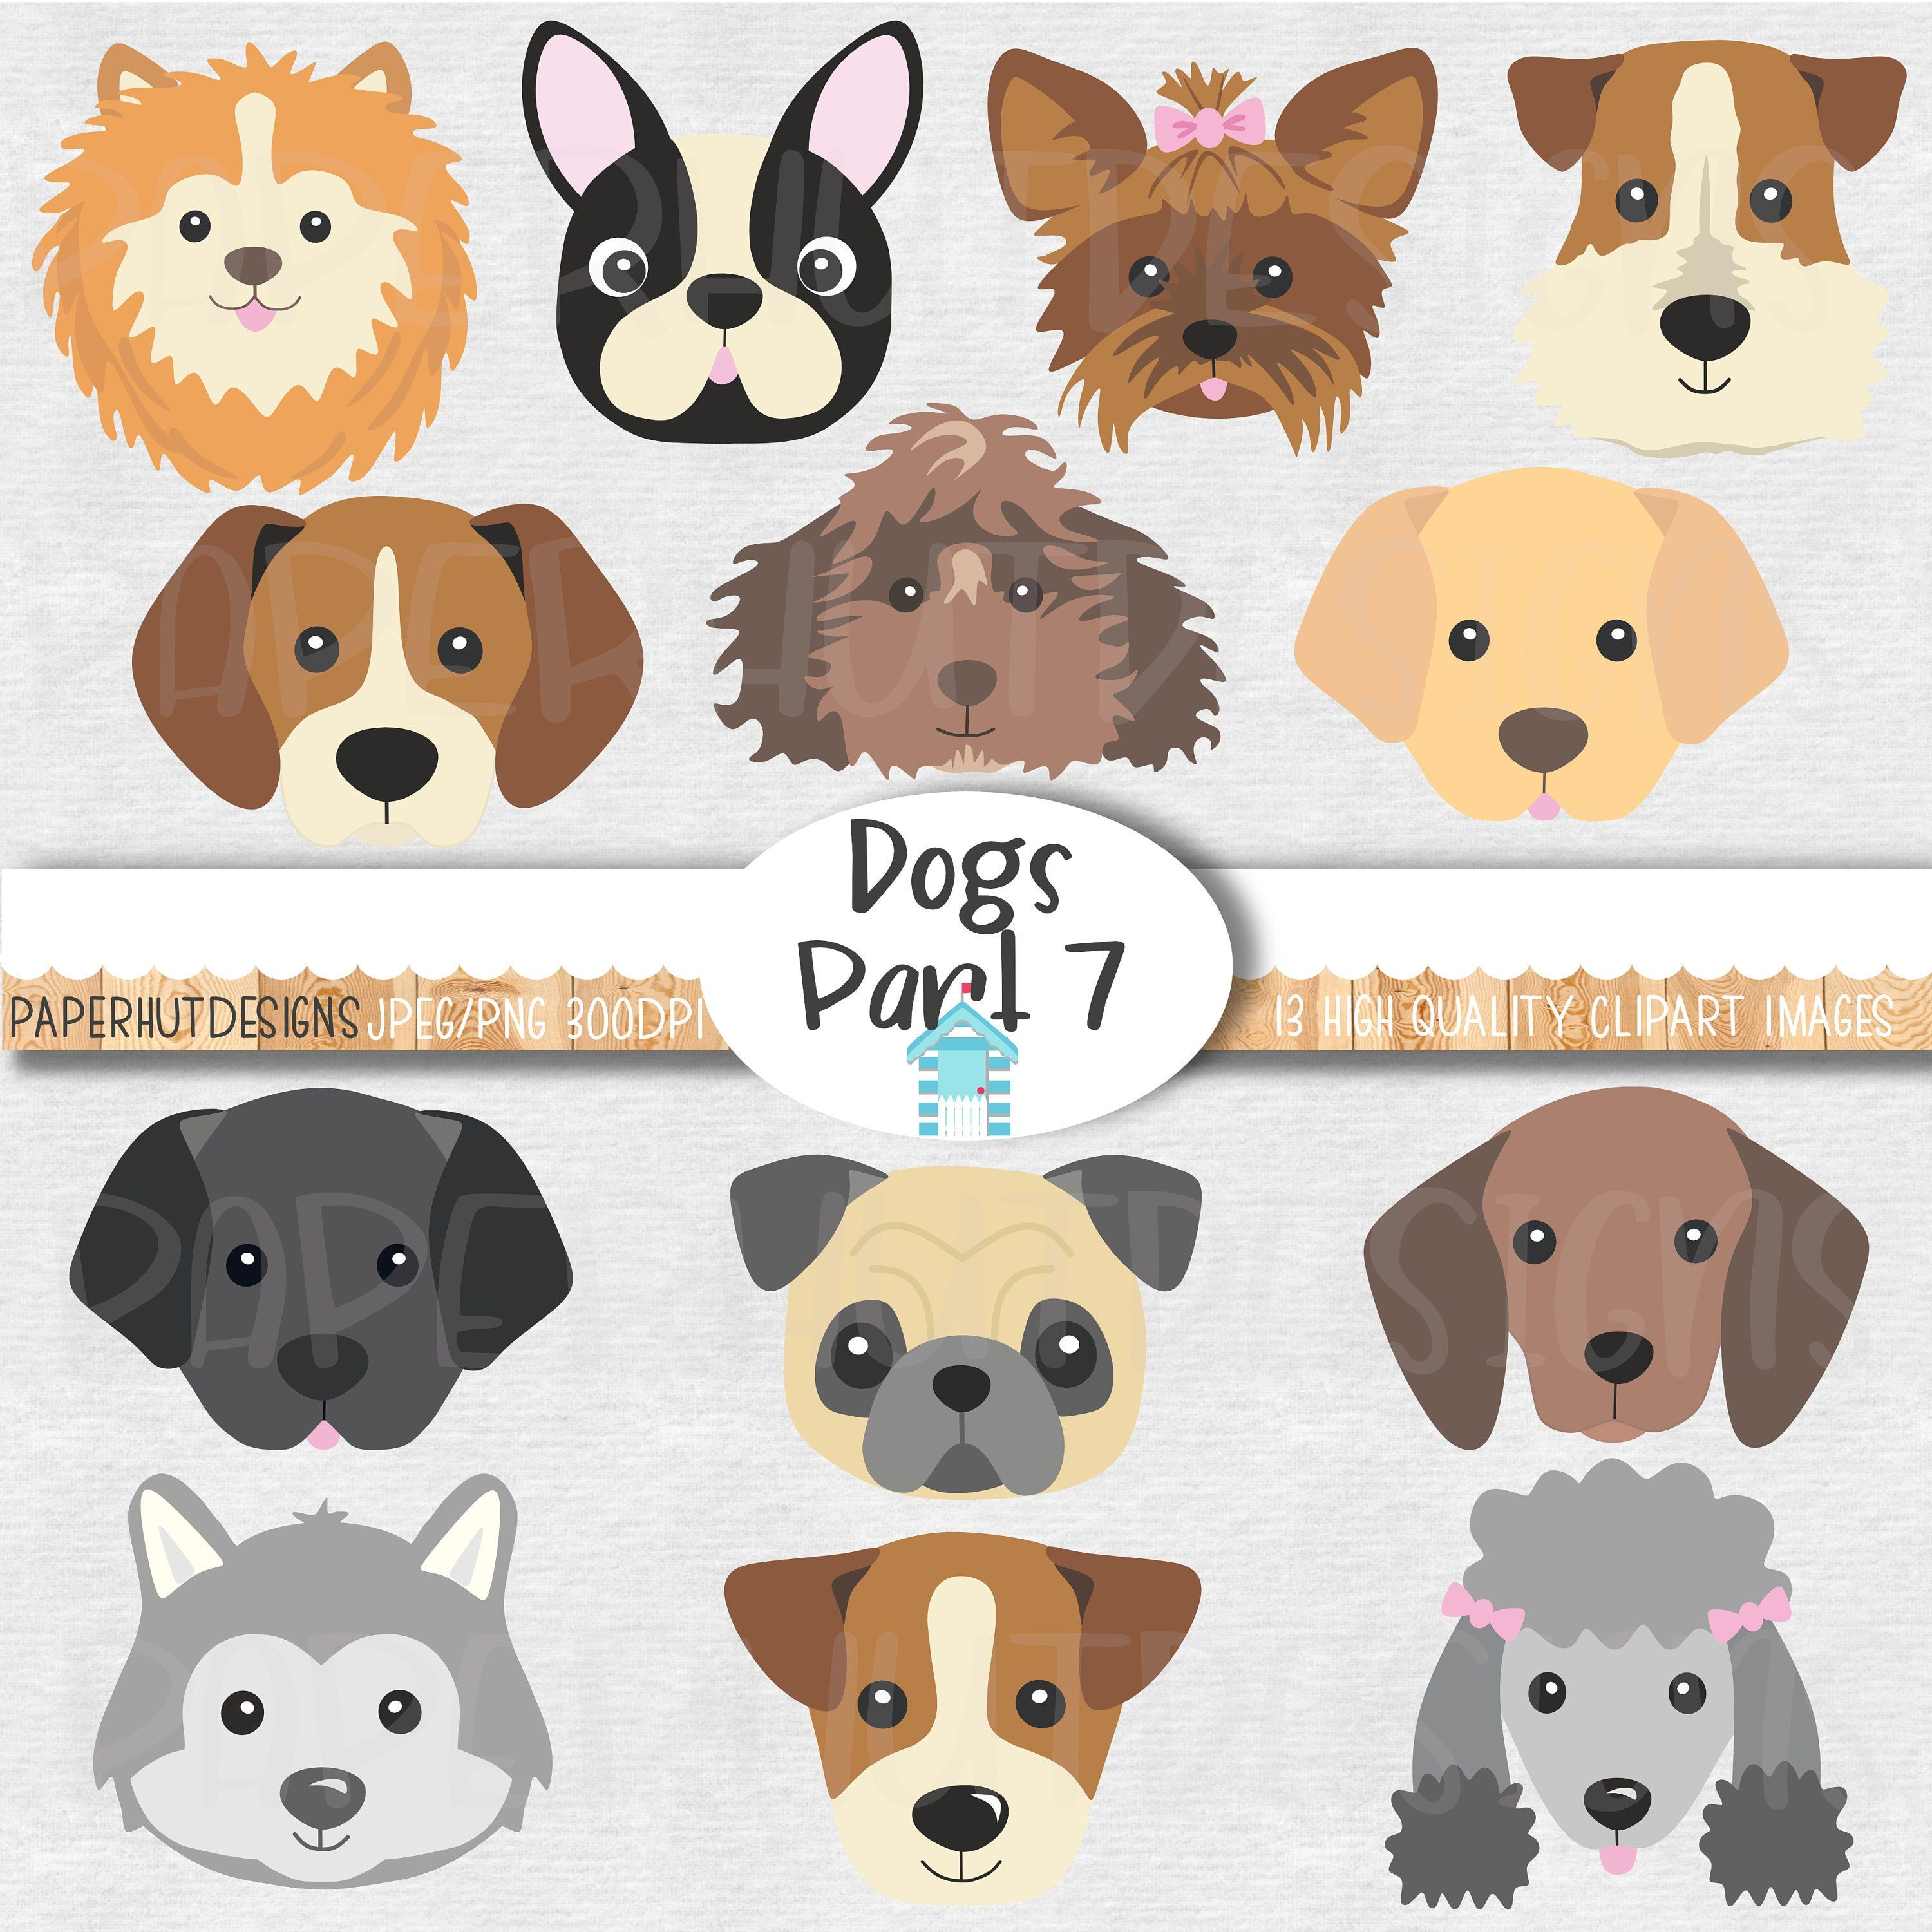 Dog Faces Clipart Cute Puppy Faces Clipart Dog Clip Art Puppy Etsy Dog Clip Art Dog Face Clip Art